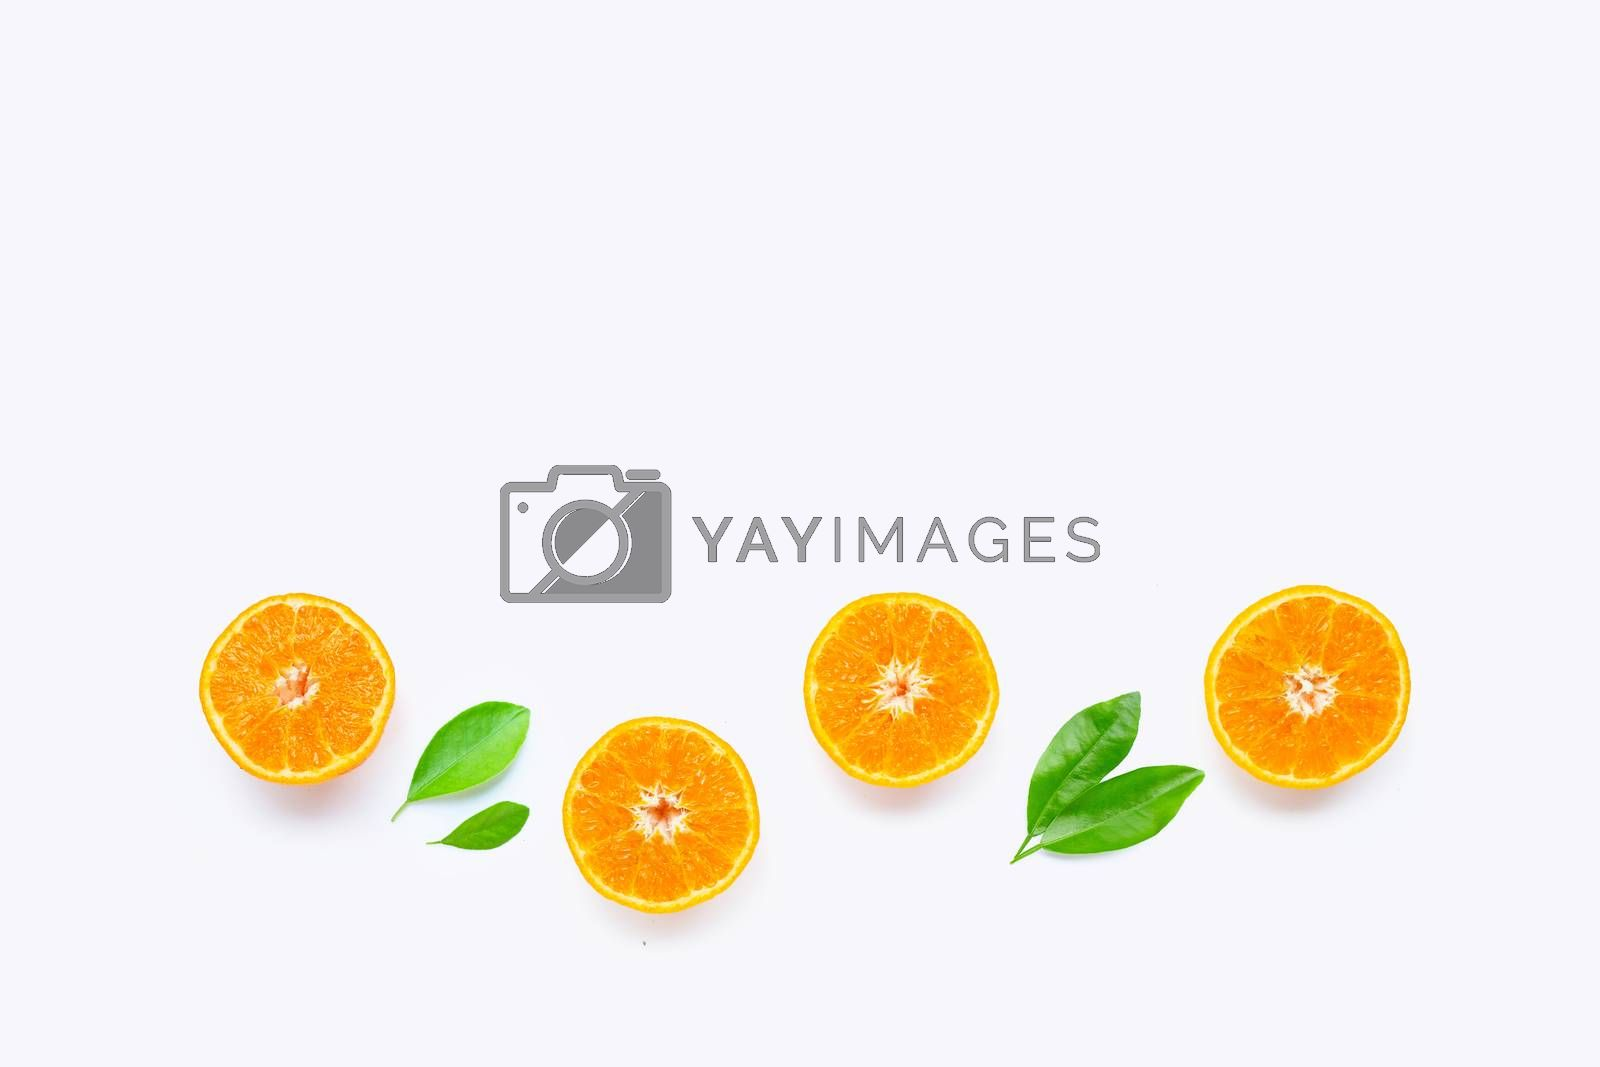 Fresh orange citrus fruit with leaves isolated on white background. Juicy and sweet and renowned for its concentration of vitamin C. Top view